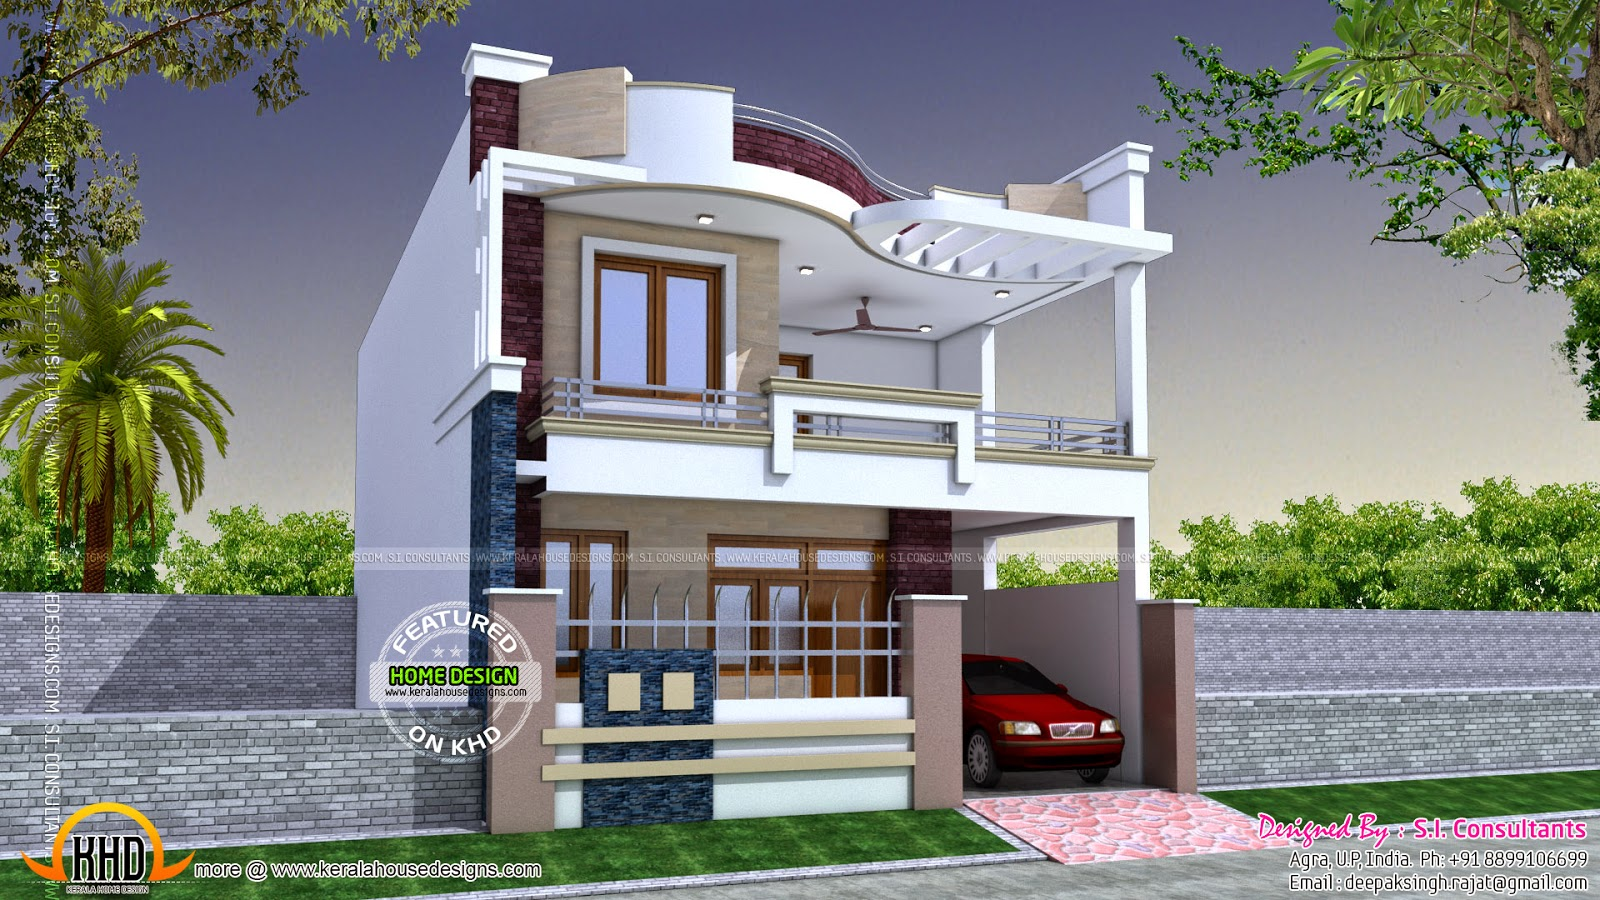 Modern indian home design kerala home design and floor plans for Design house